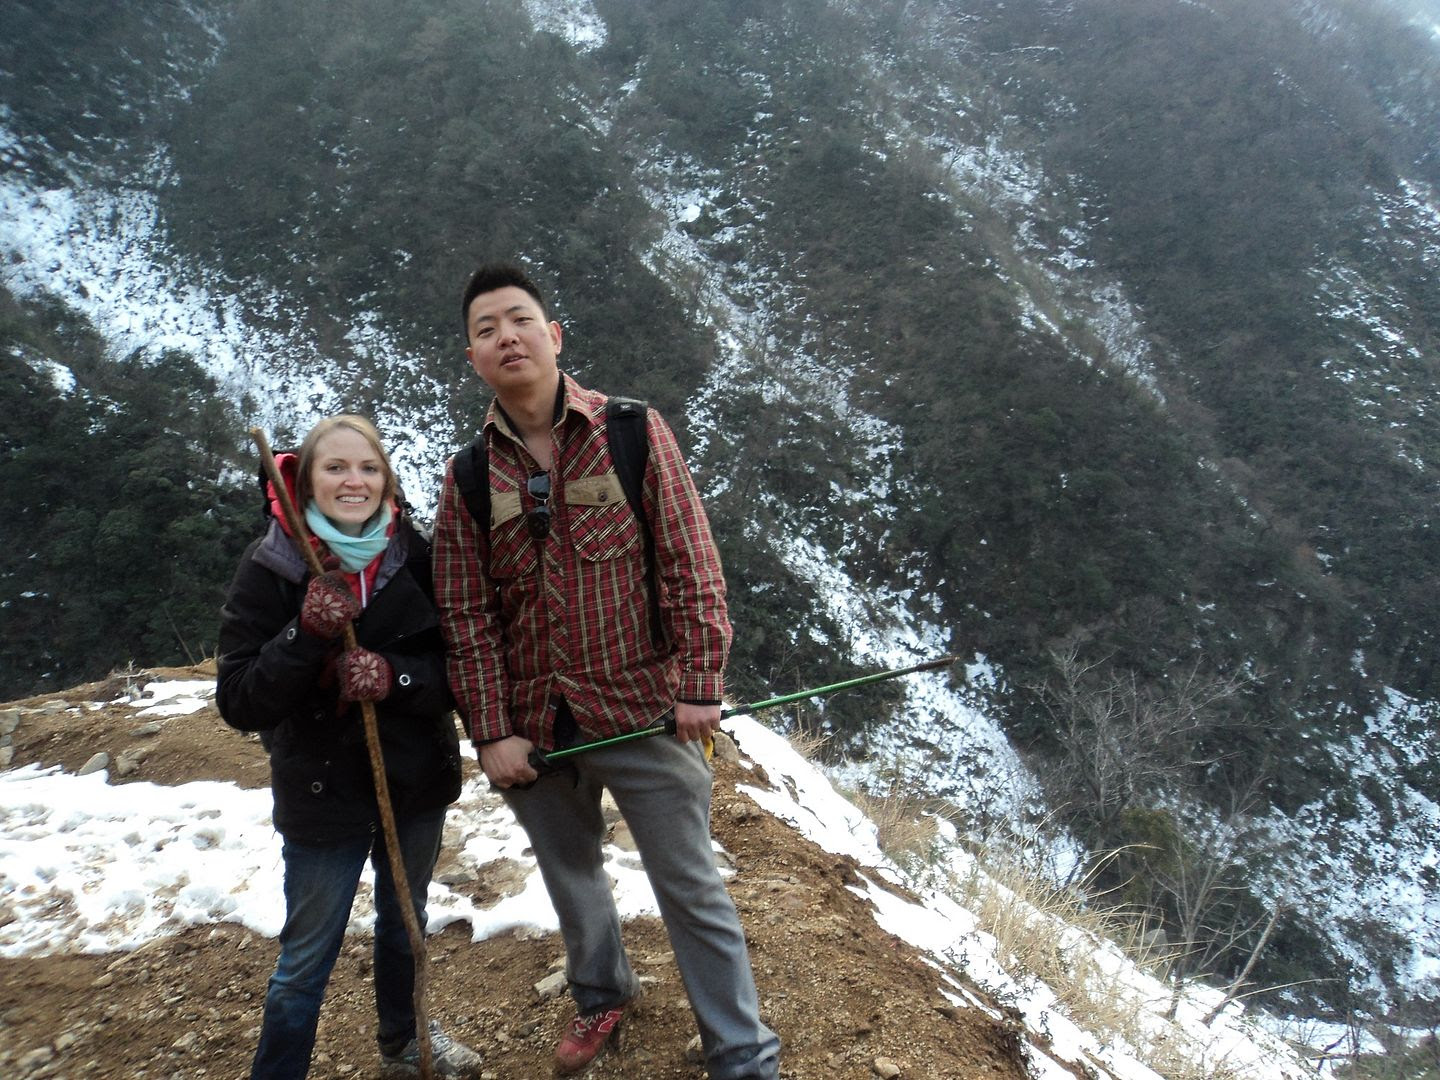 Anqi and I at Tiejian Mountain, Ningguo, Anhui, China photo 6_zps0541fdf9.jpg